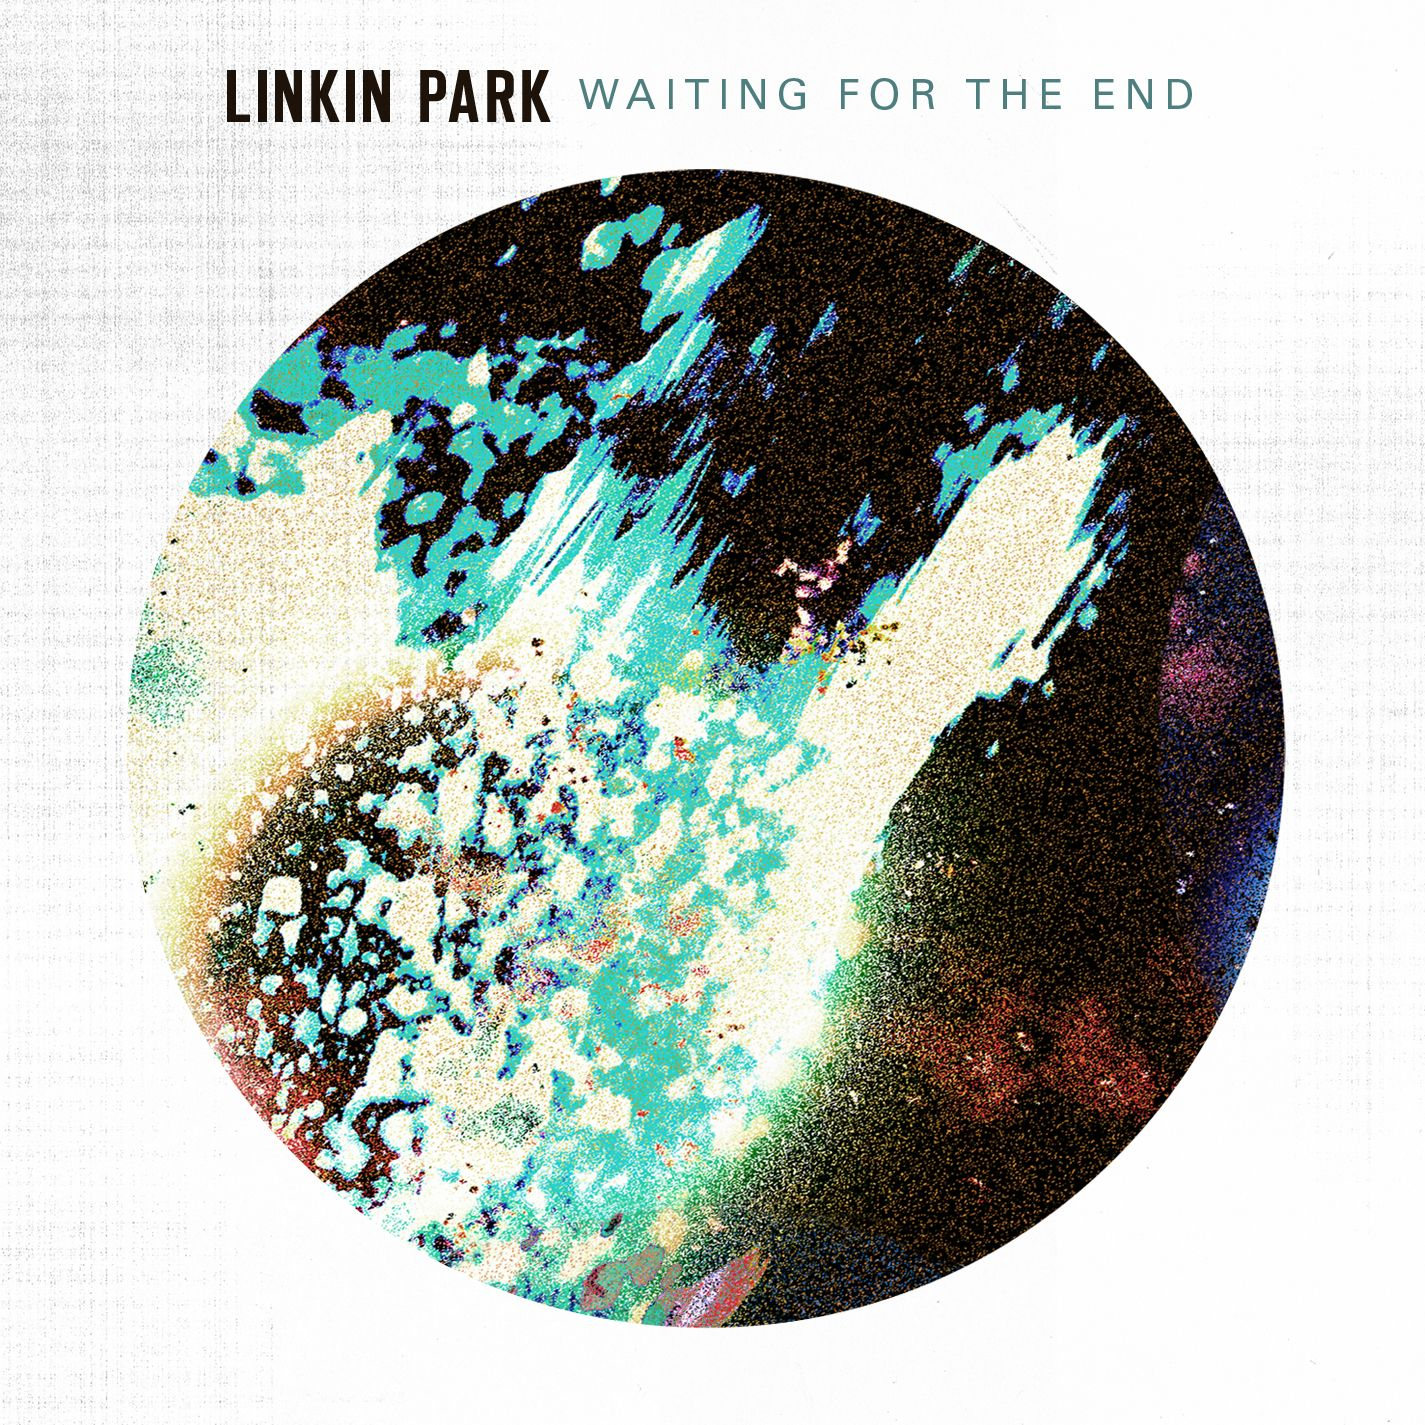 http://4.bp.blogspot.com/-qHjnBnmx42U/TxETJmmwQjI/AAAAAAAAAx0/nvWo_lXymZ4/s1600/Linkin+Park+-+Waiting+for+the+End+-+Single.jpg